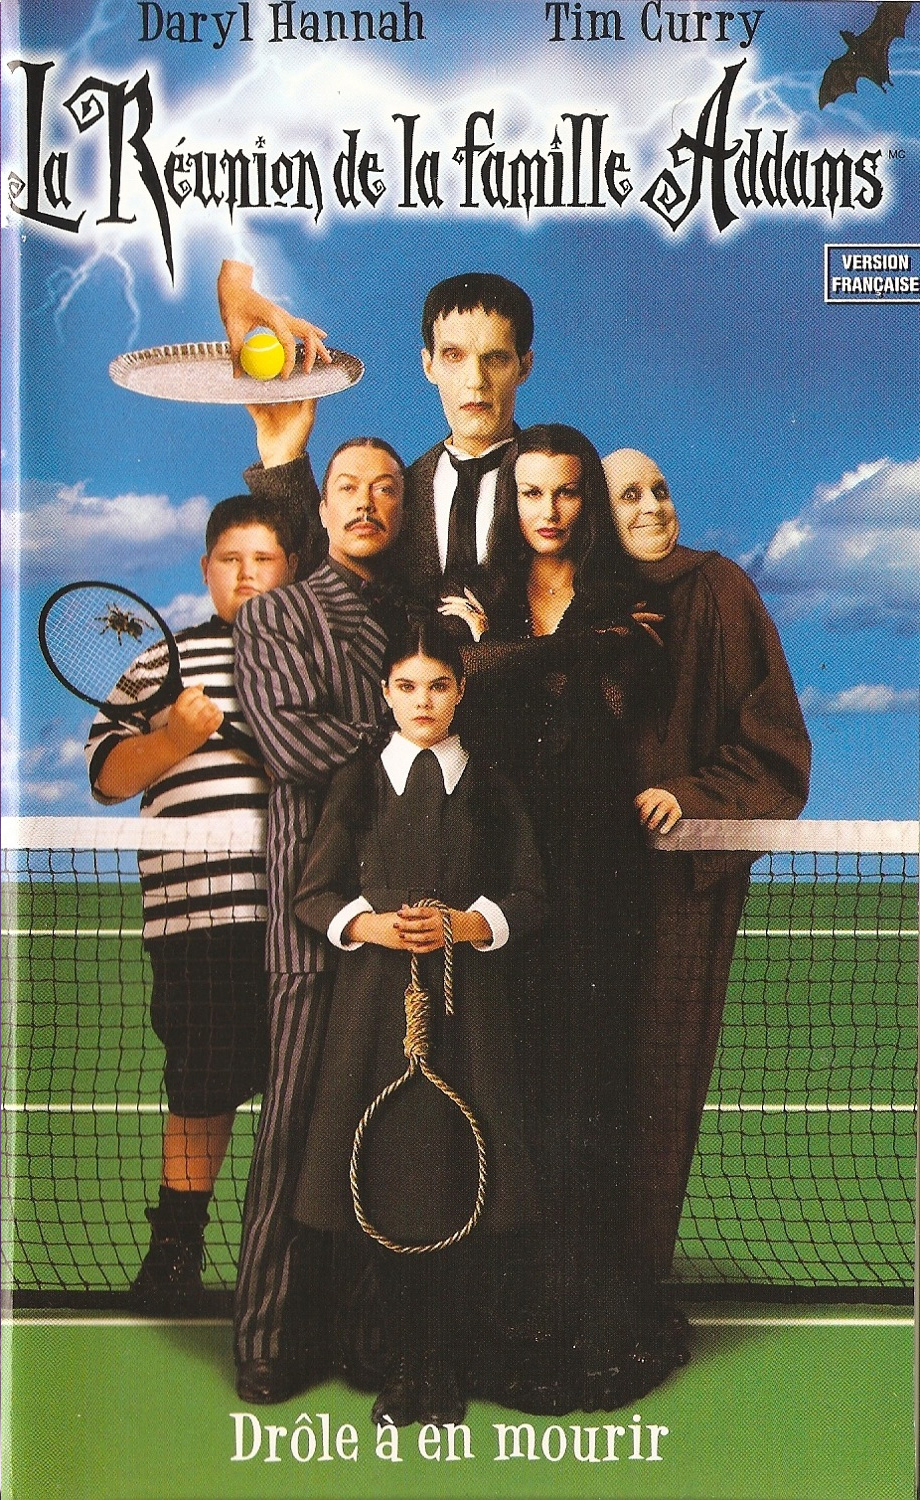 Streaming La famille Addams : Les retrouvailles